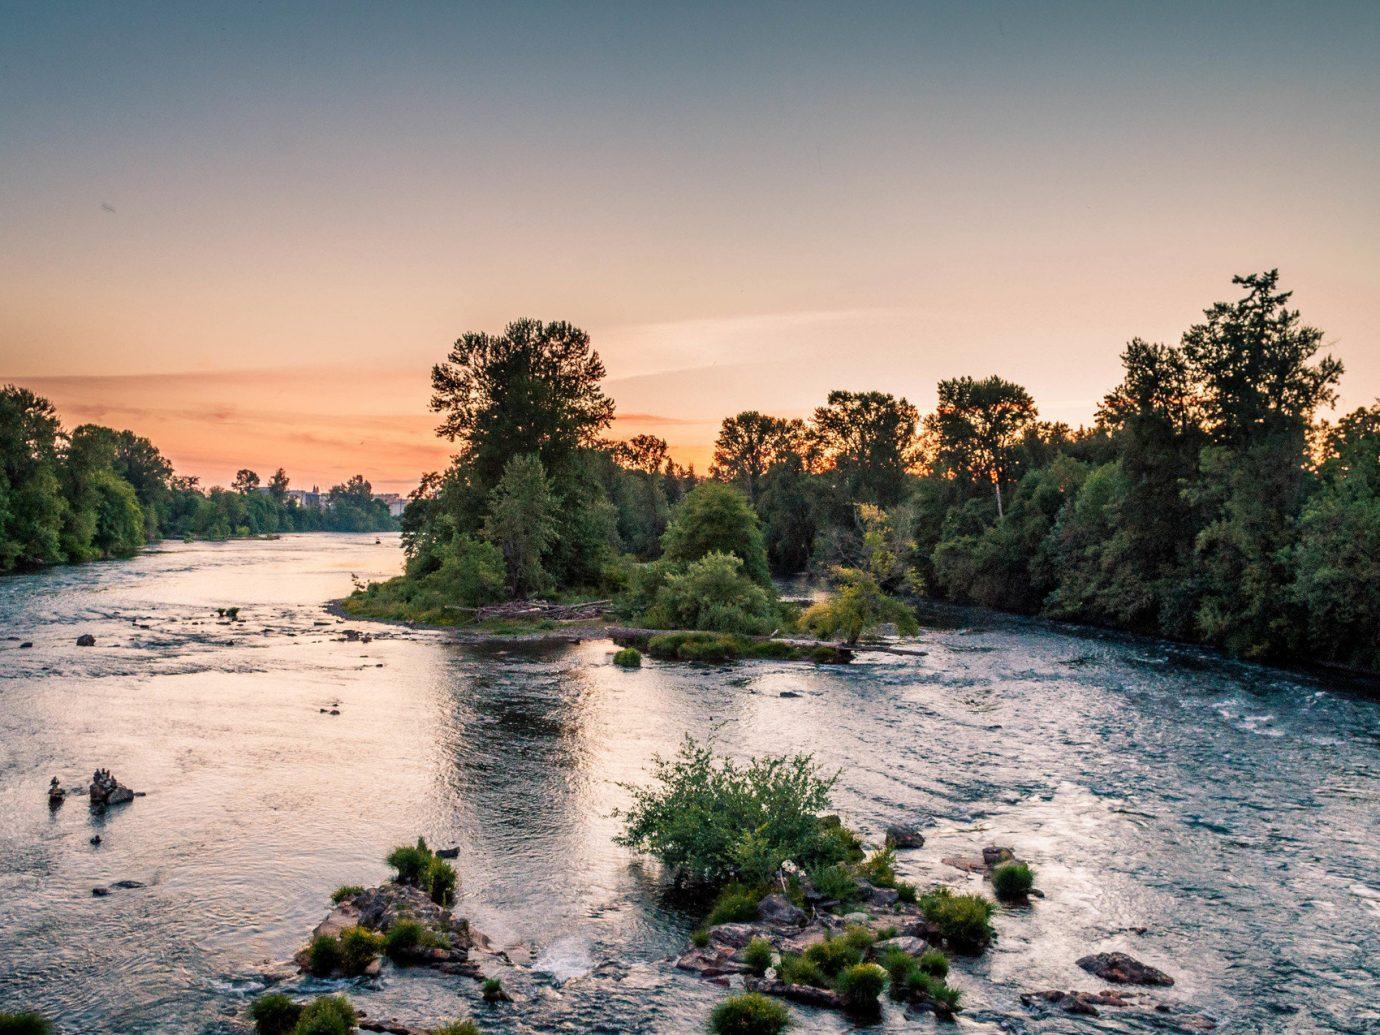 Trip Ideas tree outdoor water sky Nature River body of water natural environment reflection shore morning vacation landscape Lake Sea Sunset evening dusk setting surrounded wooded